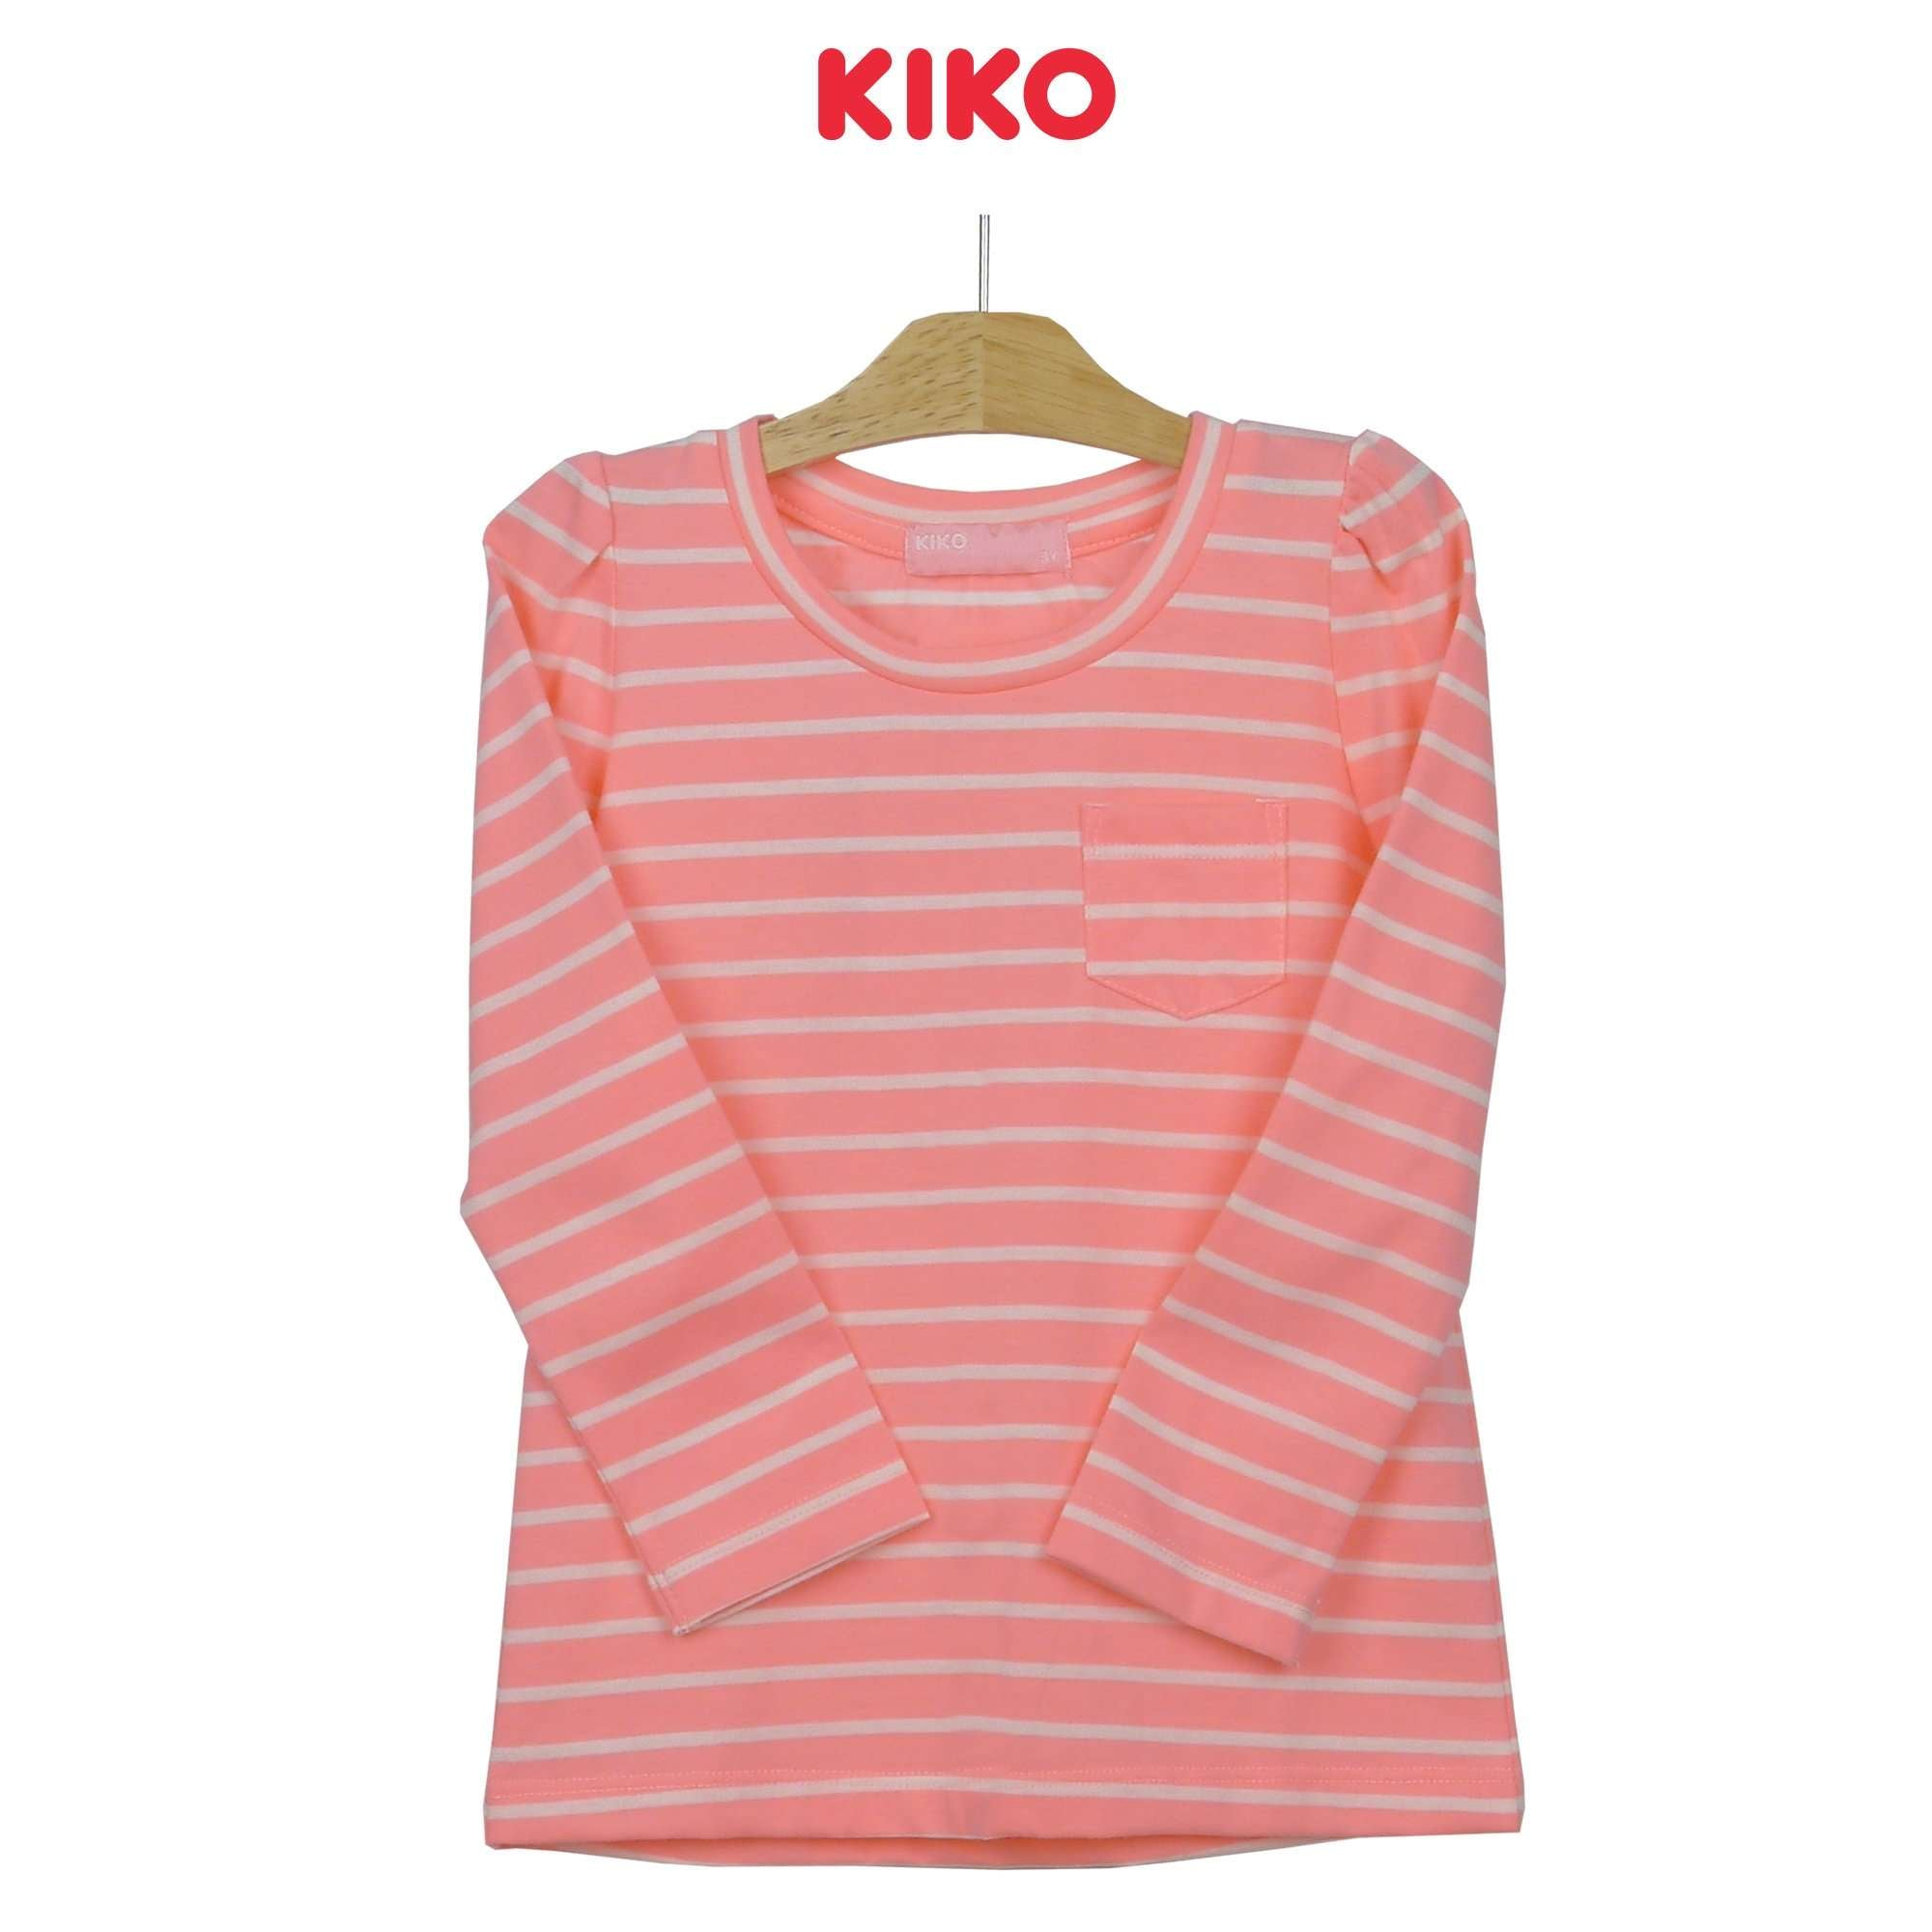 KIKO Girl Round Neck Long Sleeve Tee 126075-132 : Buy KIKO online at CMG.MY